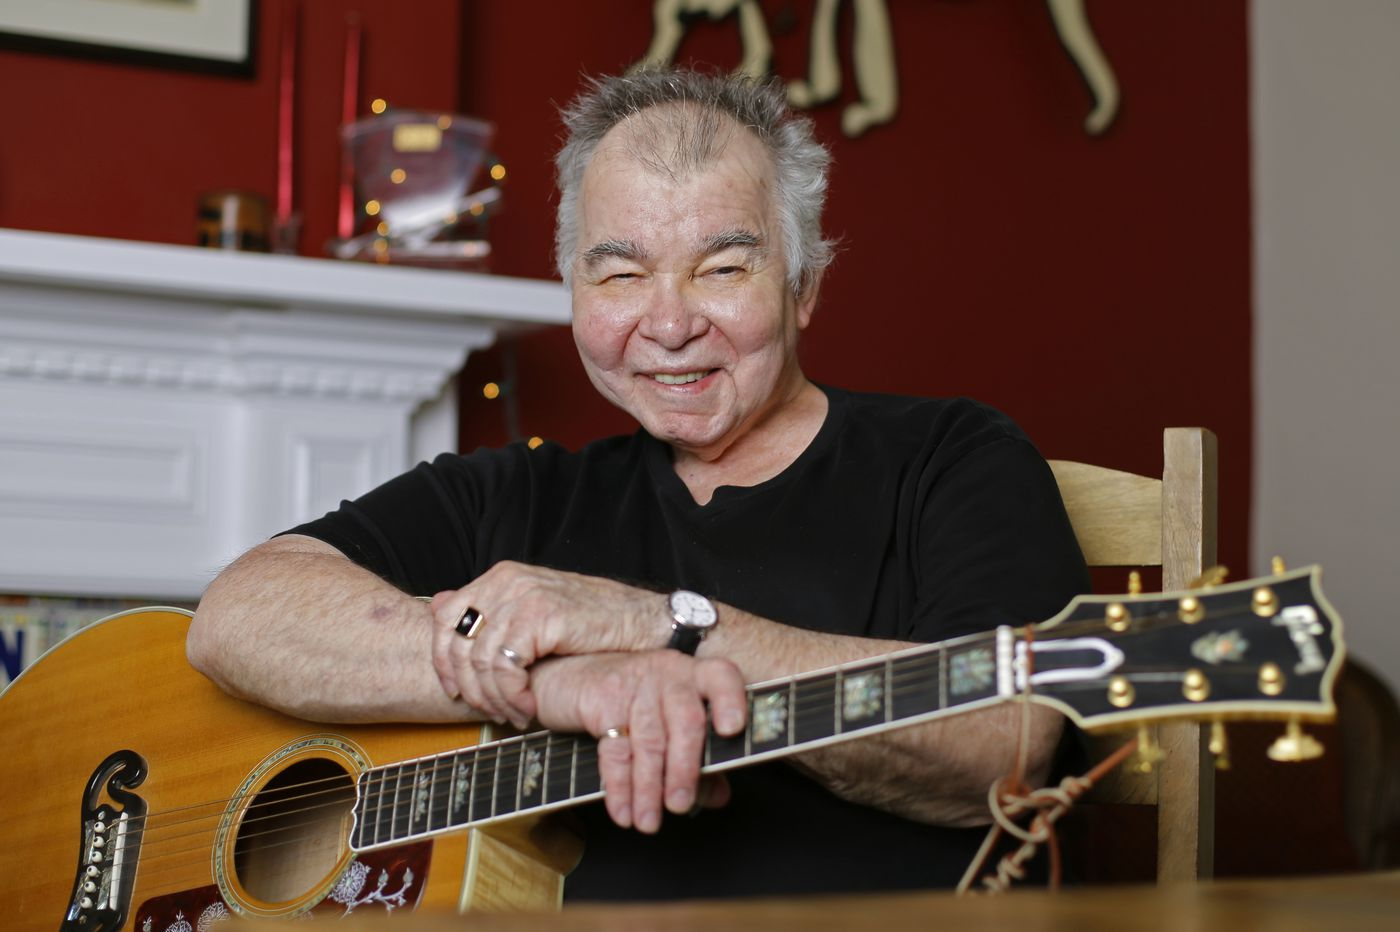 John Prine, Bill Withers, Chynna, and too many others in a crushing death toll for music this week